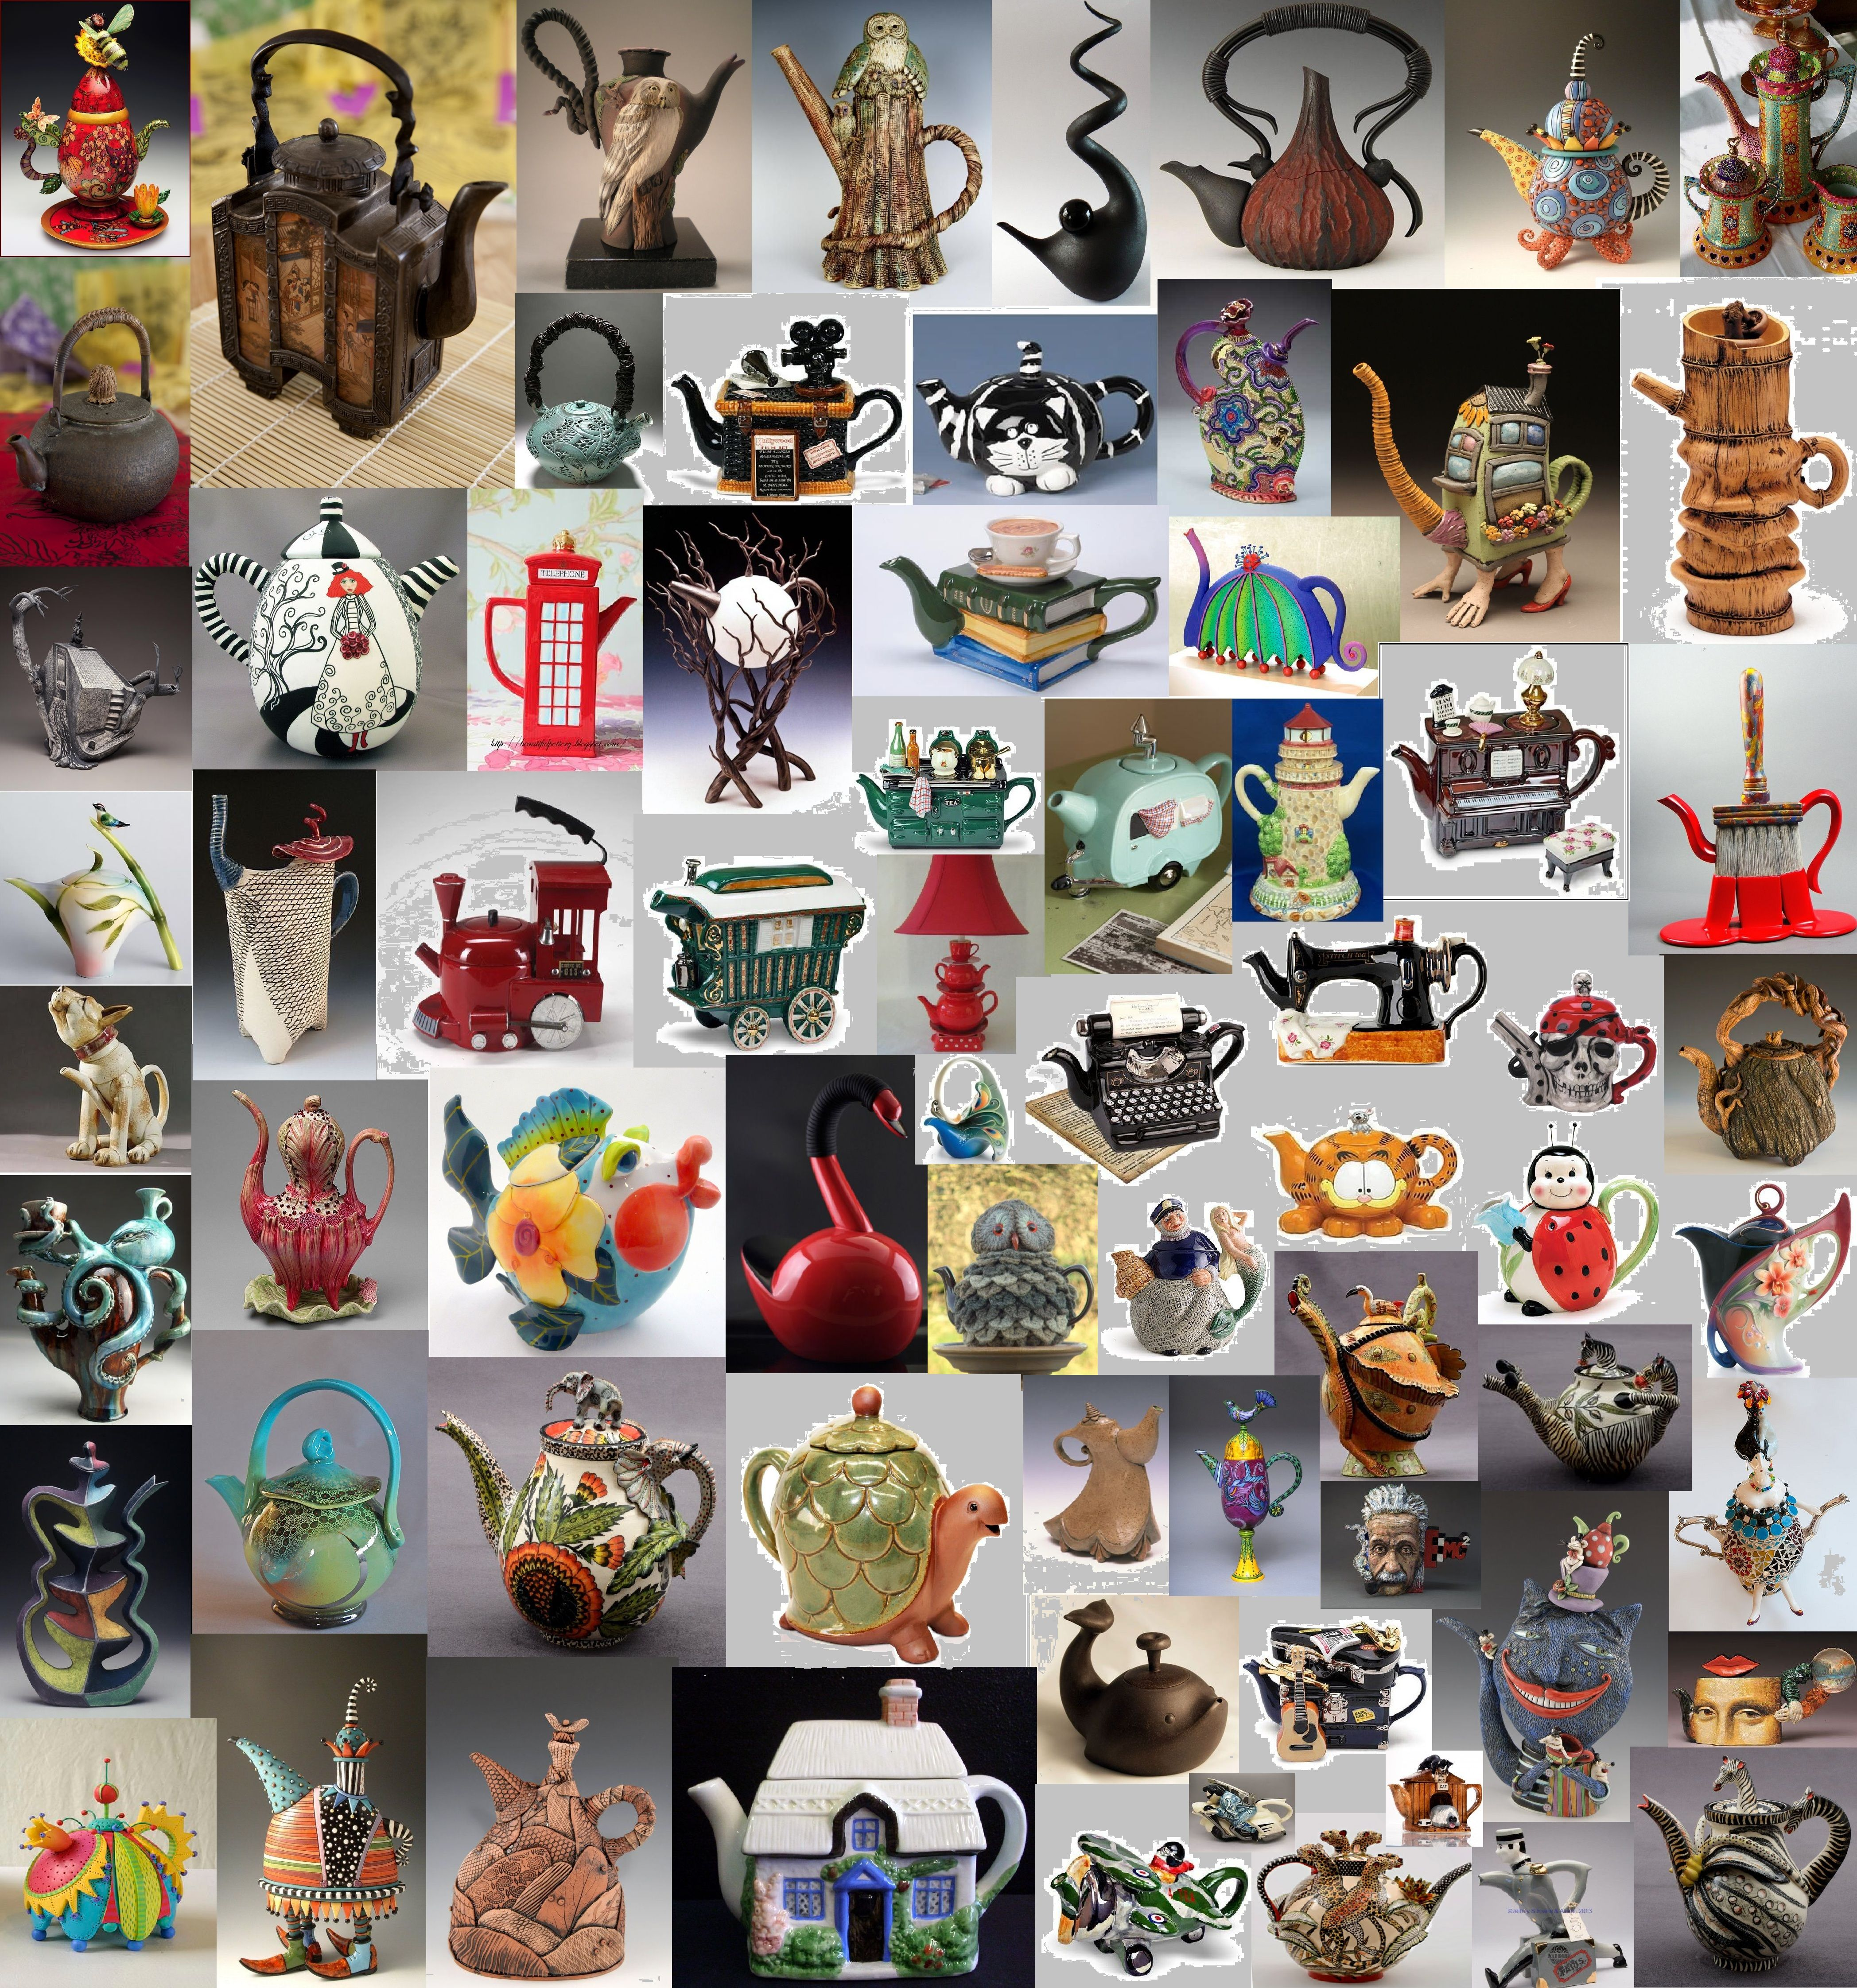 some fun teapots from around the world